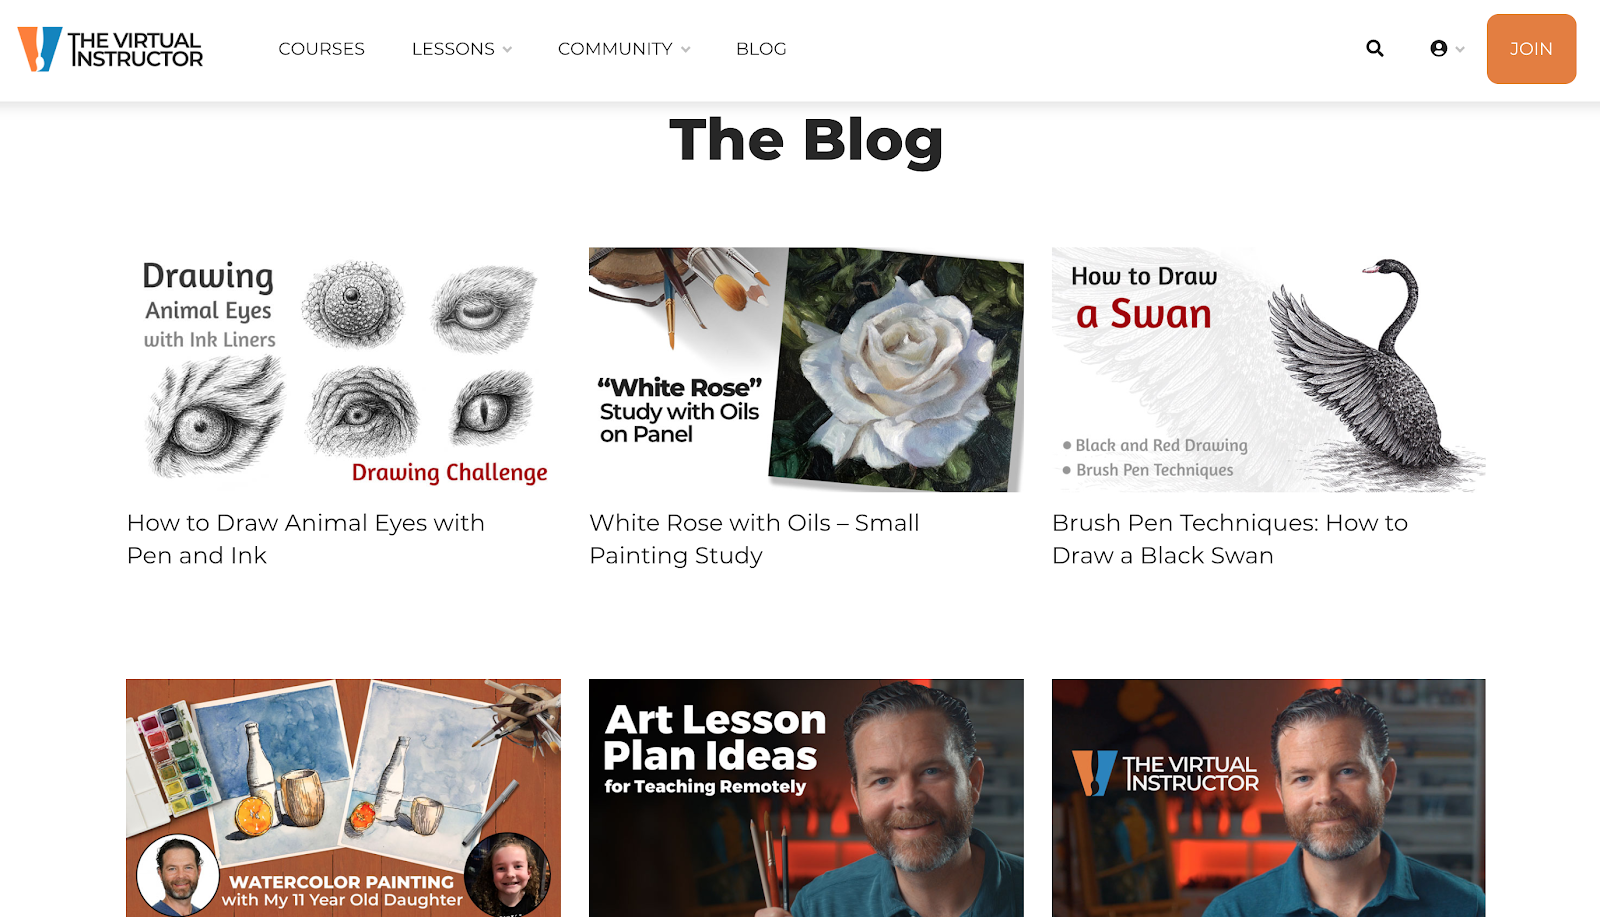 The Virtual Instructor blog interface